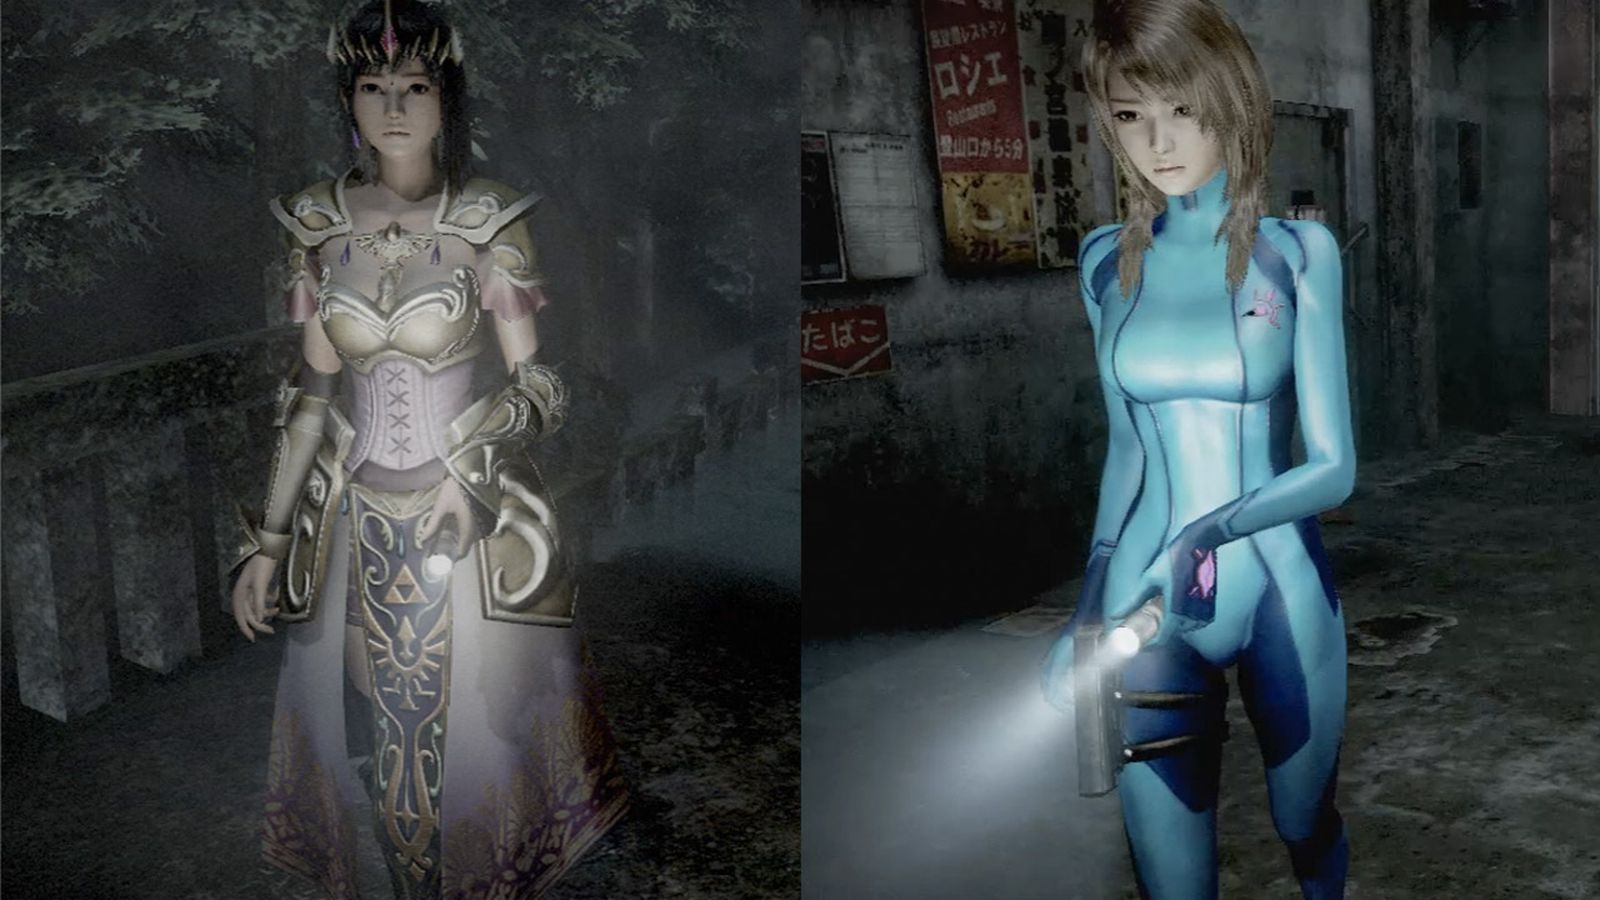 Fatal Frame Wii U : Metroid and zelda costumes coming to fatal frame for wii u